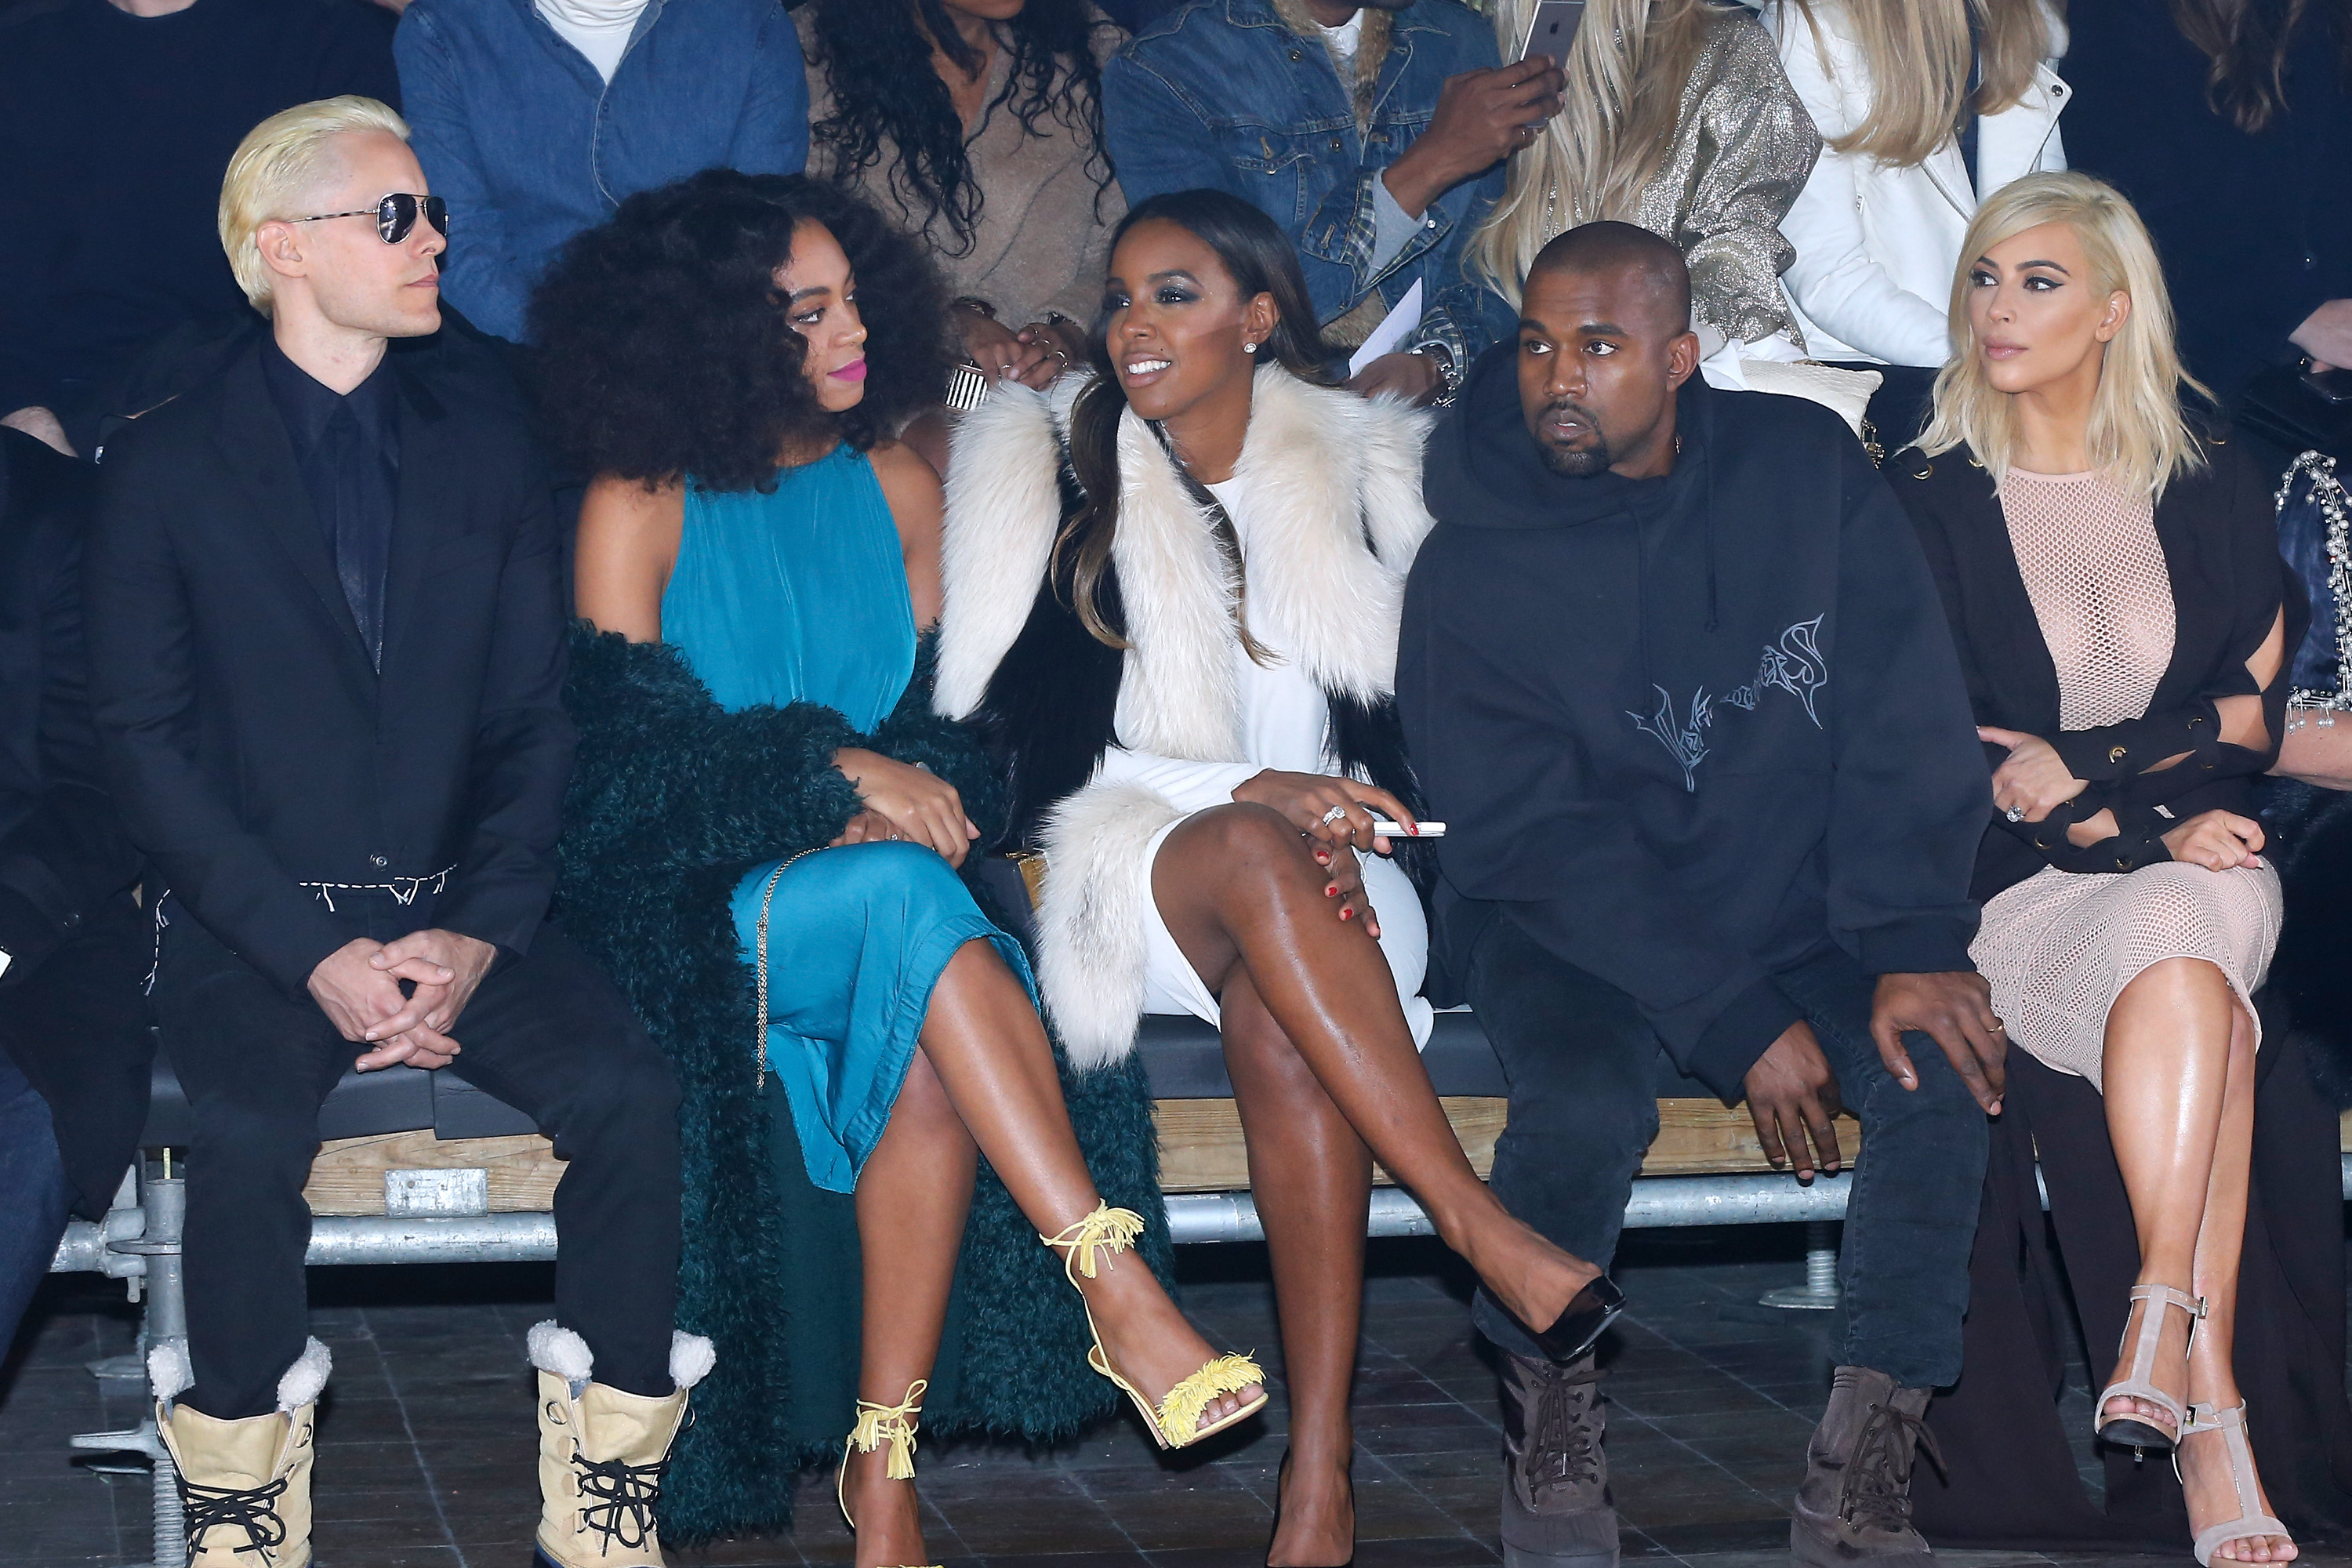 Jared Leto, Solange Knowles, Kelly Rowland, Kanye West and Kim Kardashian attend the Lanvin Fall/Winter 2015 fashion show.